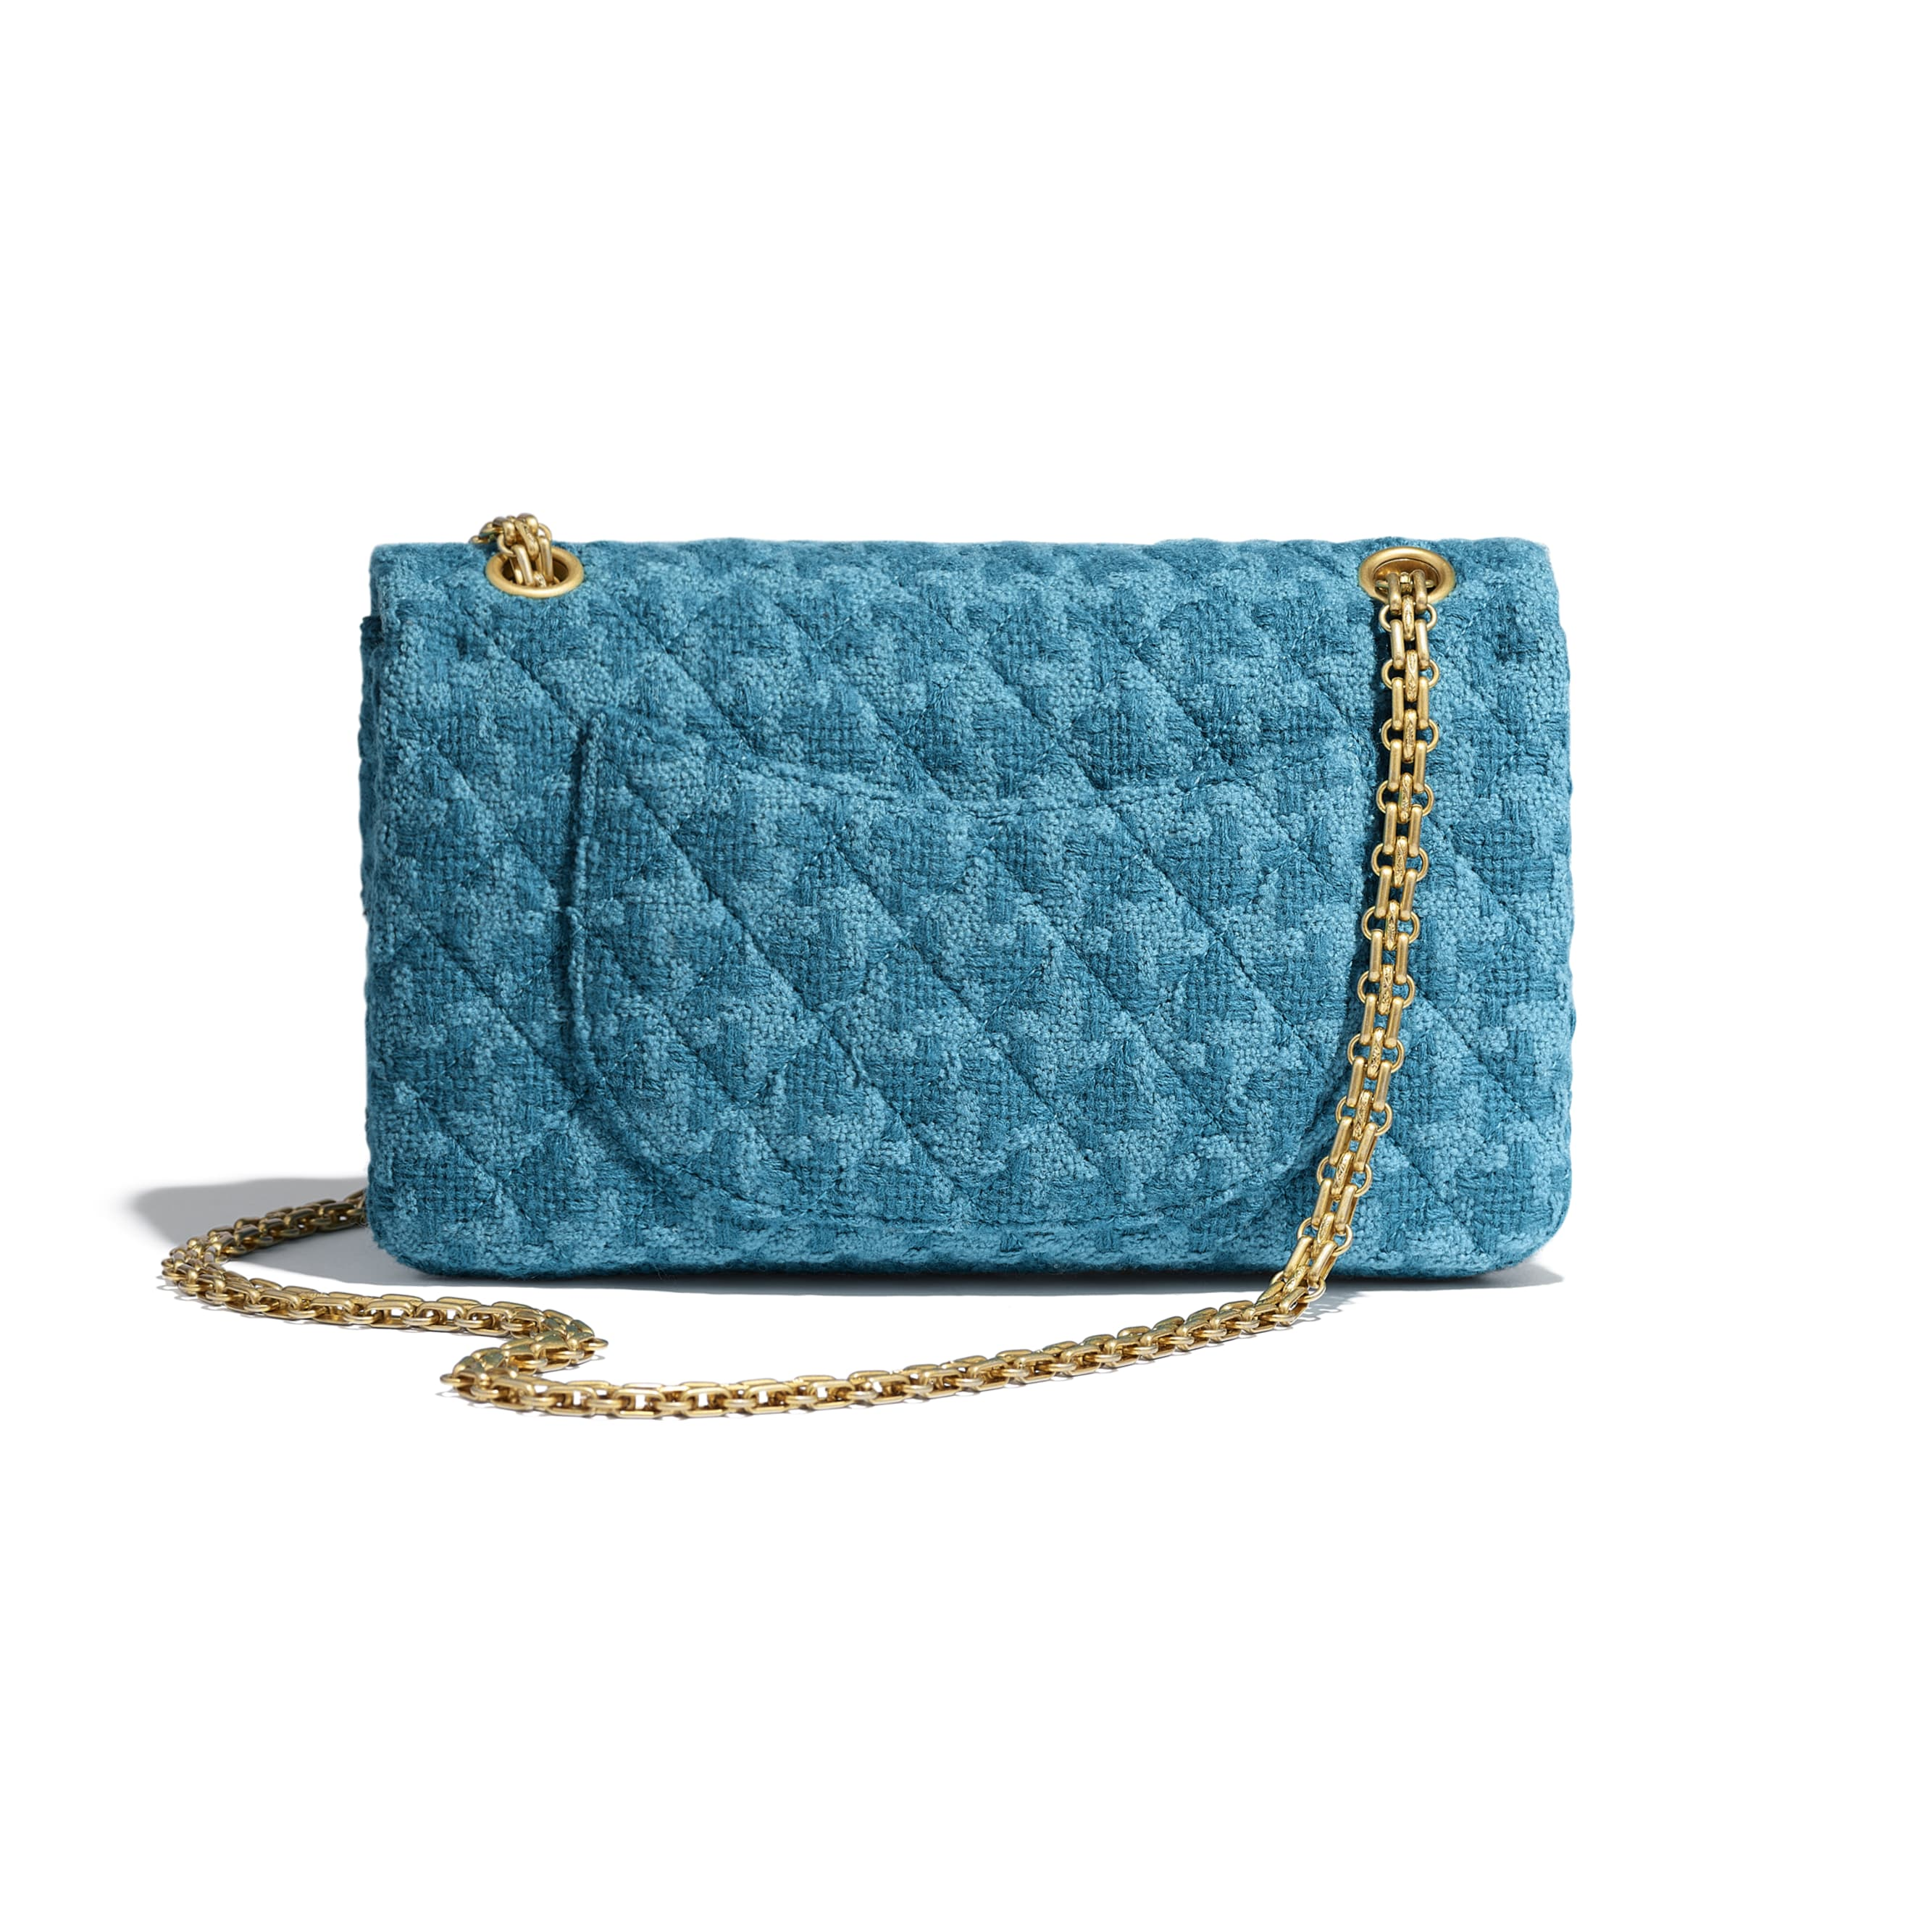 2.55 Handbag - Turquoise - Wool Tweed & Gold-Tone Metal - CHANEL - Alternative view - see standard sized version